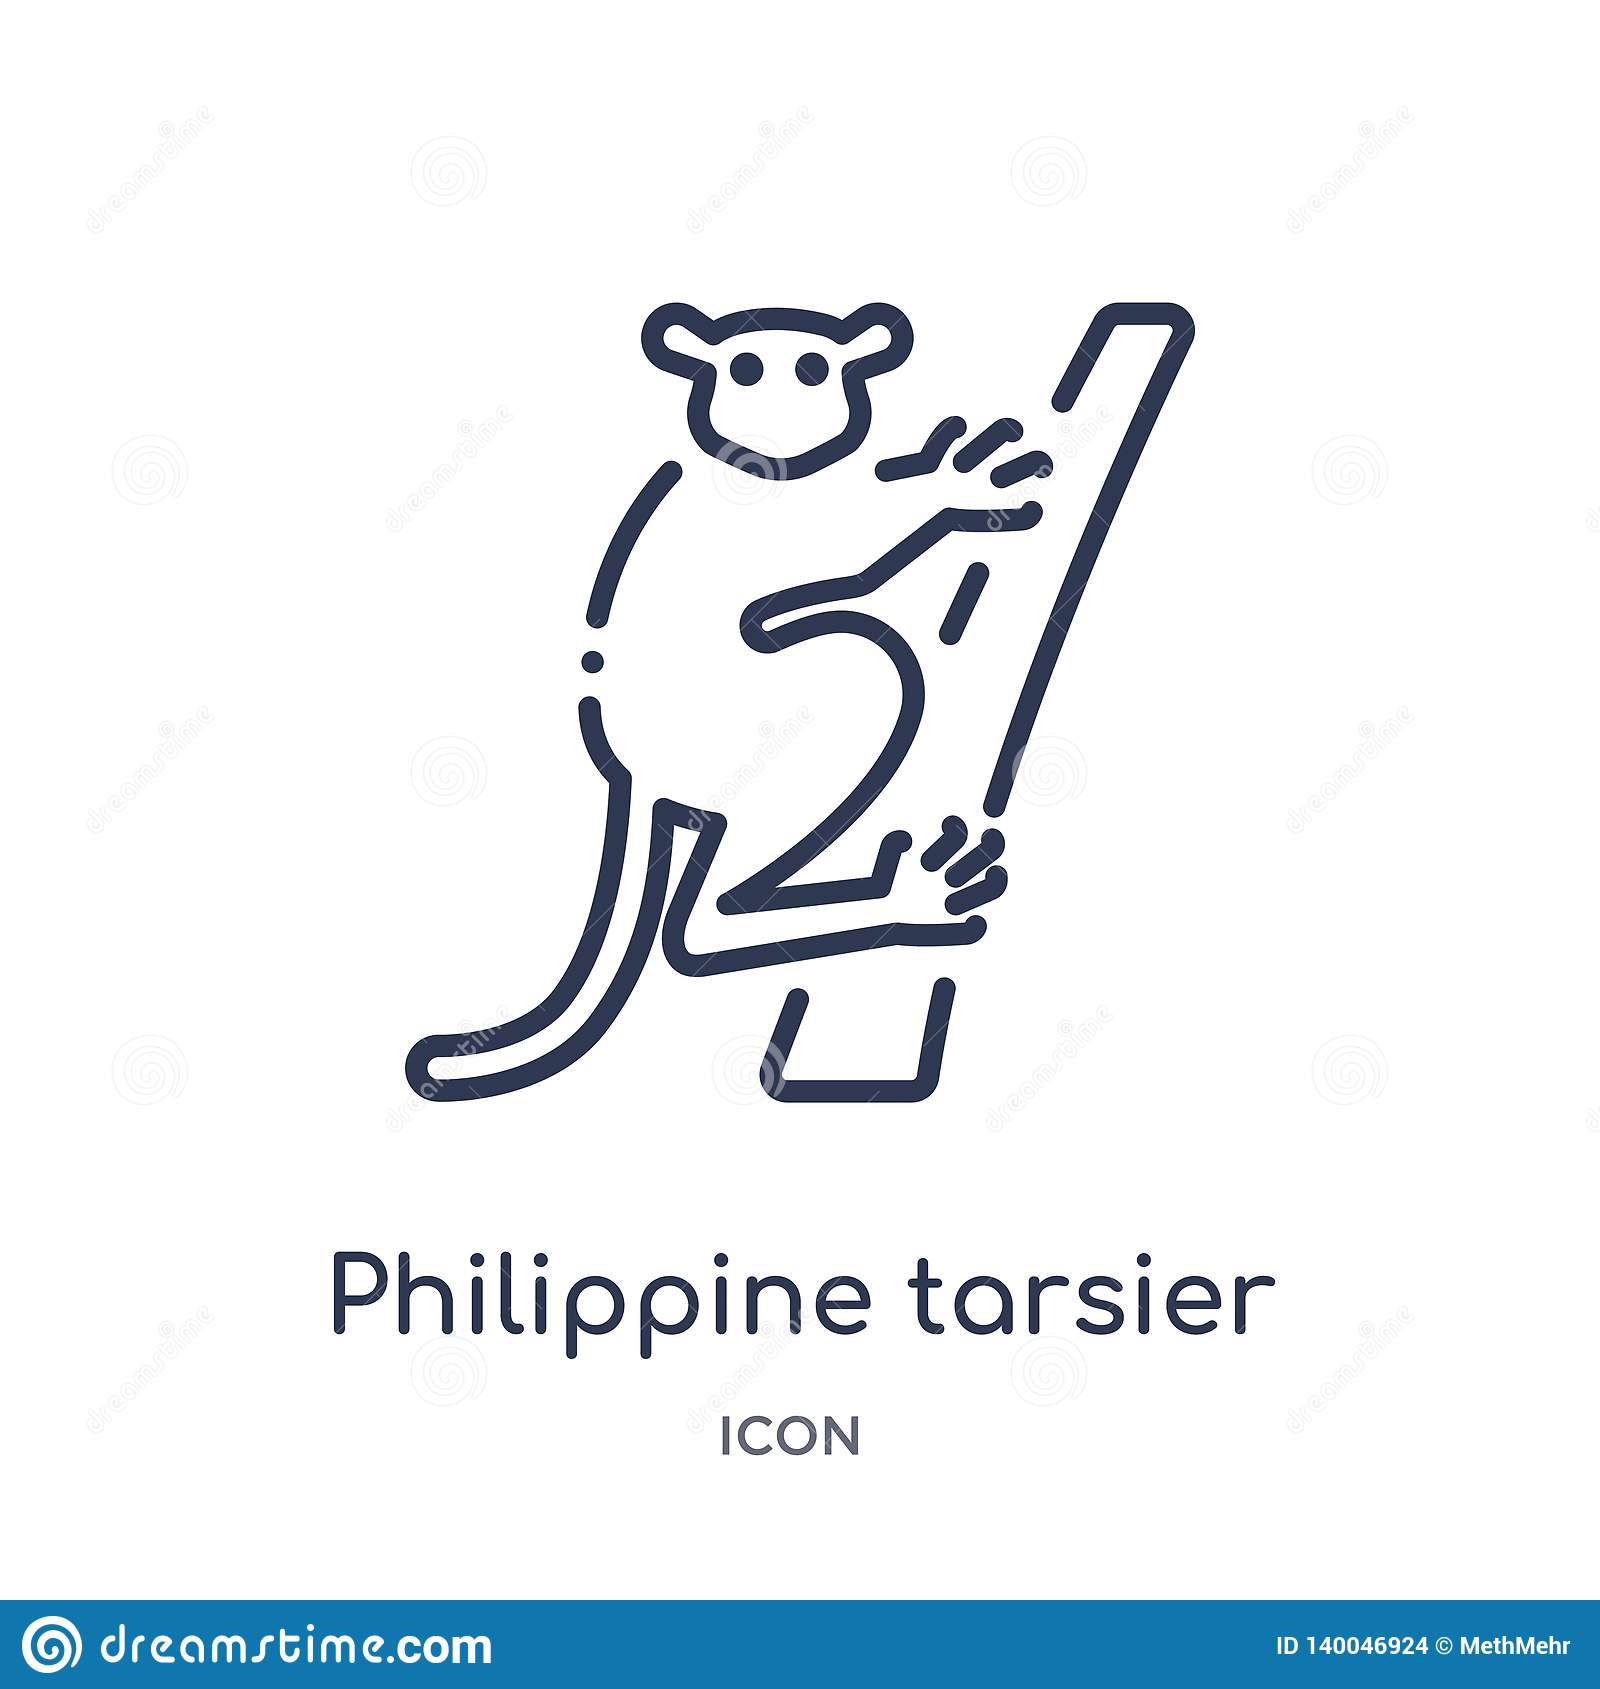 Linear philippine tarsier icon from Animals and wildlife outline collection. Thin line philippine tarsier vector isolated on white